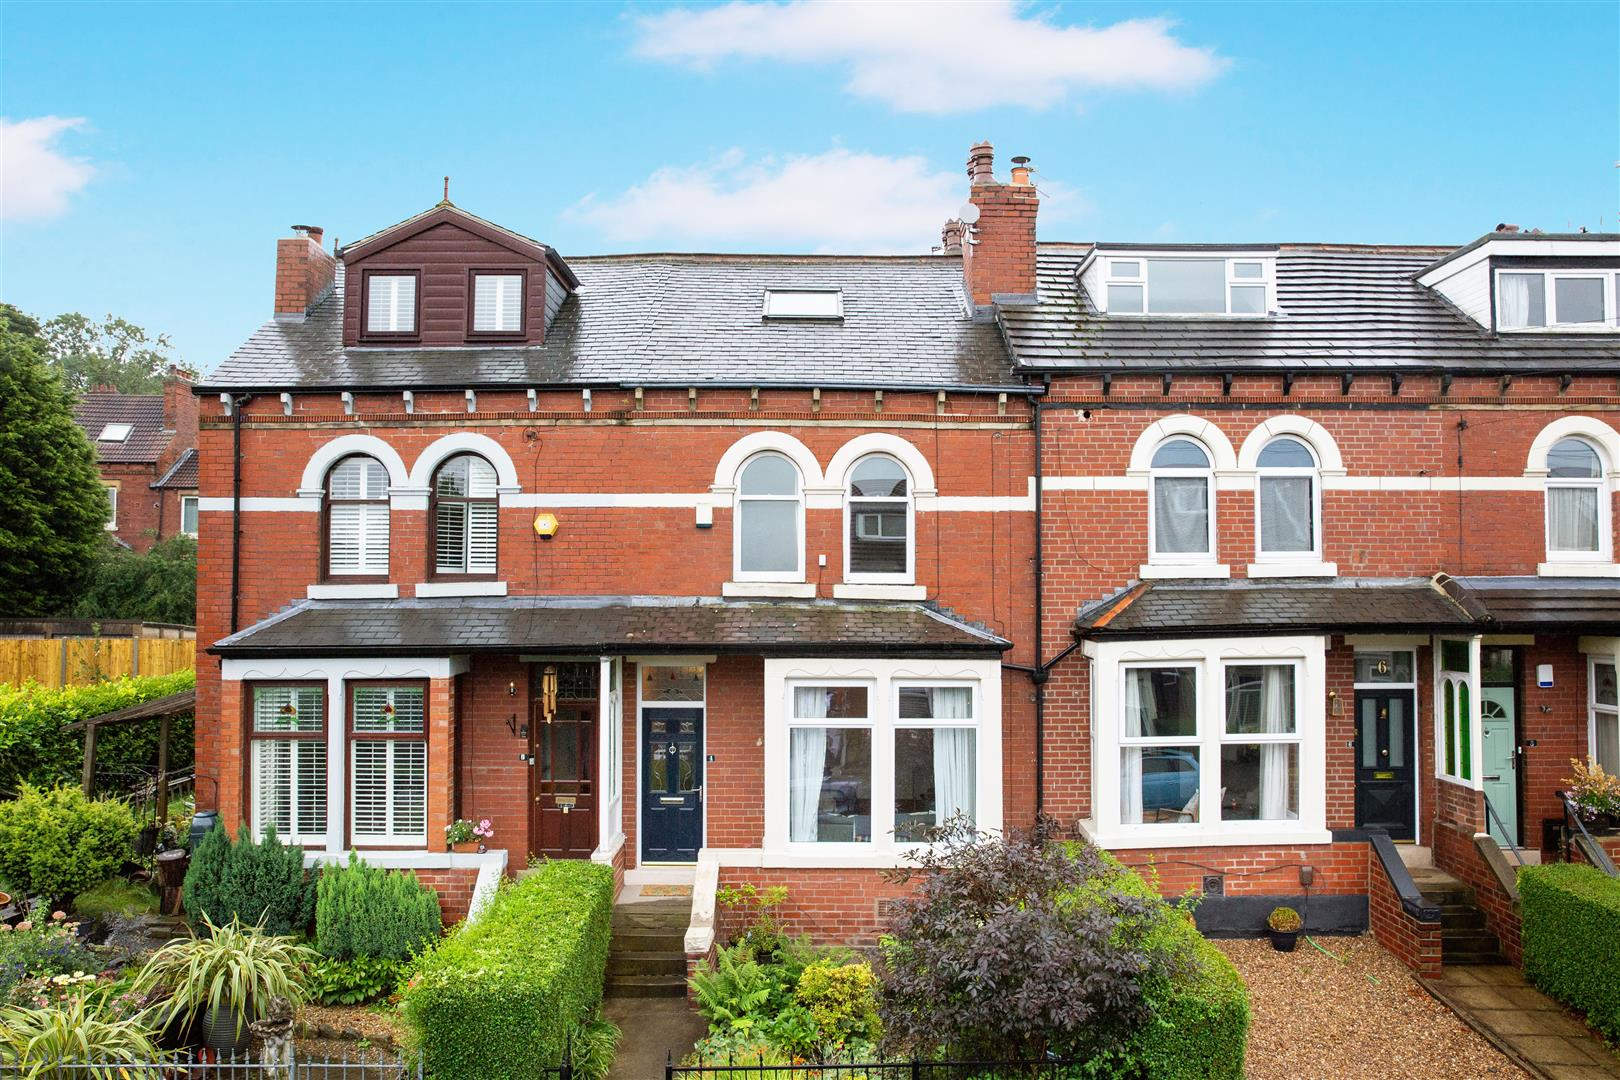 Beautiful Victorian terraced house with gardens in Leeds